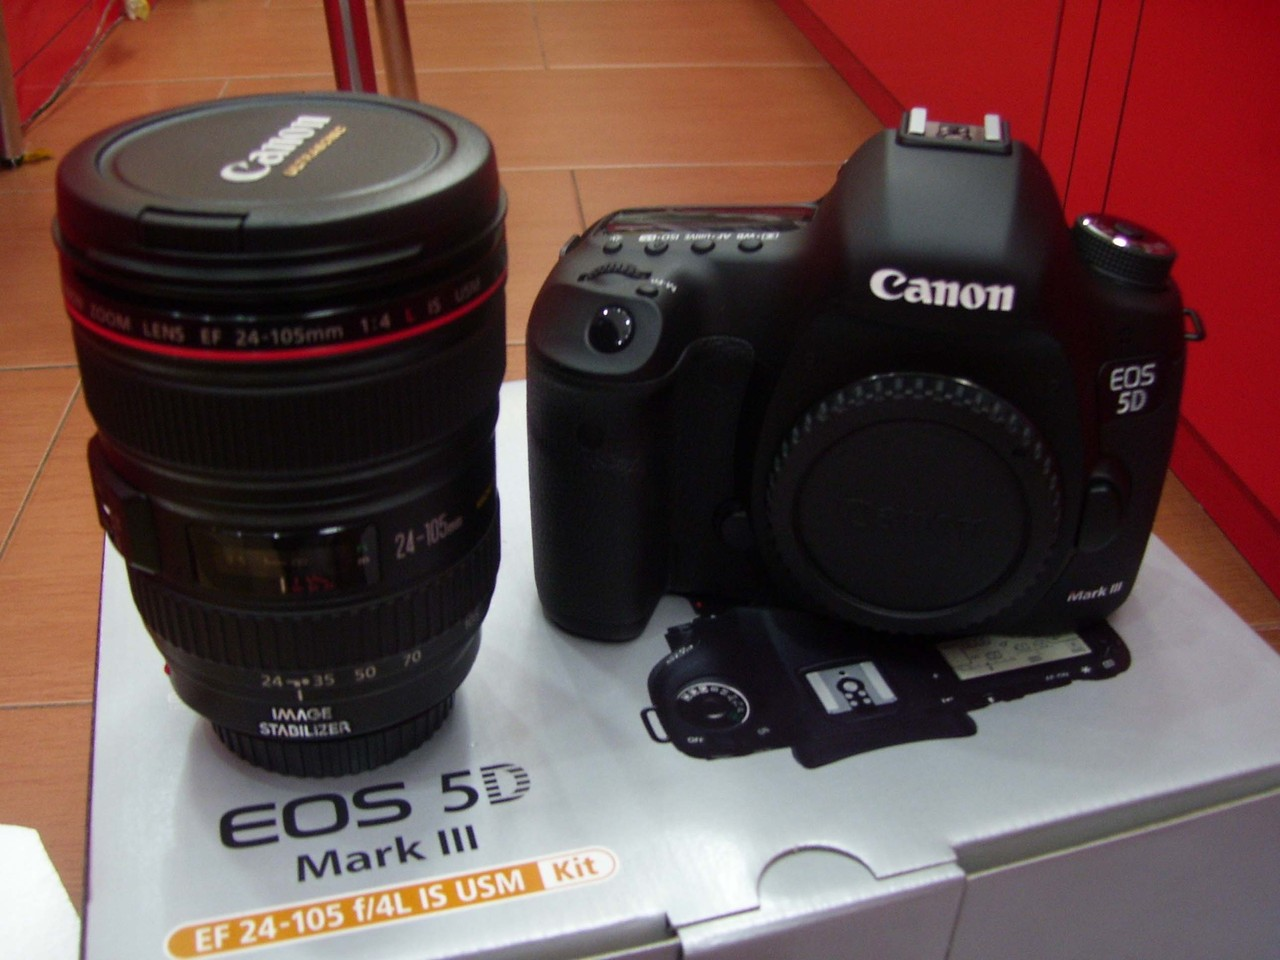 Canon eos 6d 202 mp cmos digital slr camera ef24-105mm is lens kit